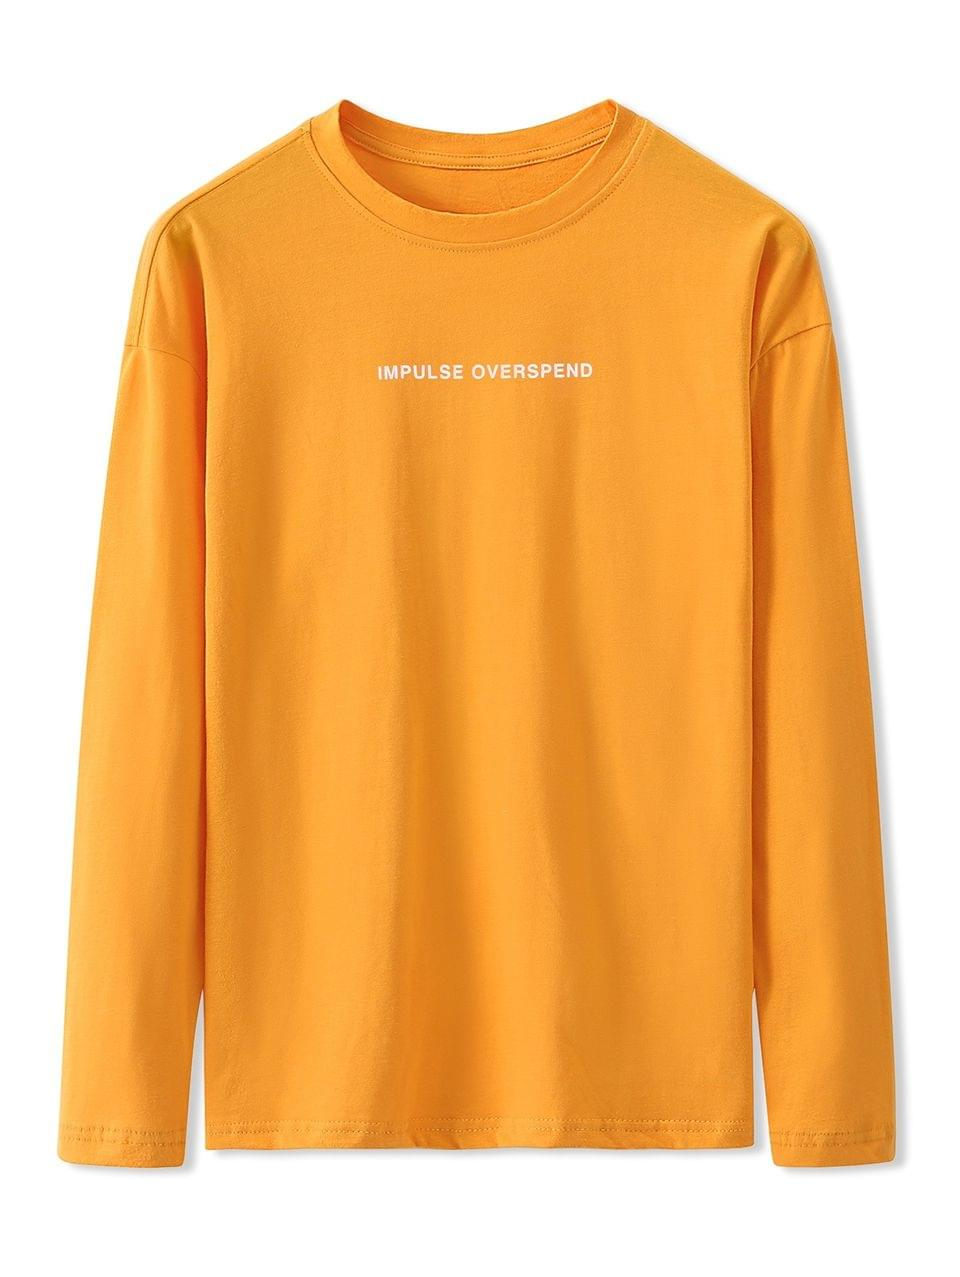 Men's Letter Graphic Print Long Sleeve Basic T-shirt - Bright Yellow M